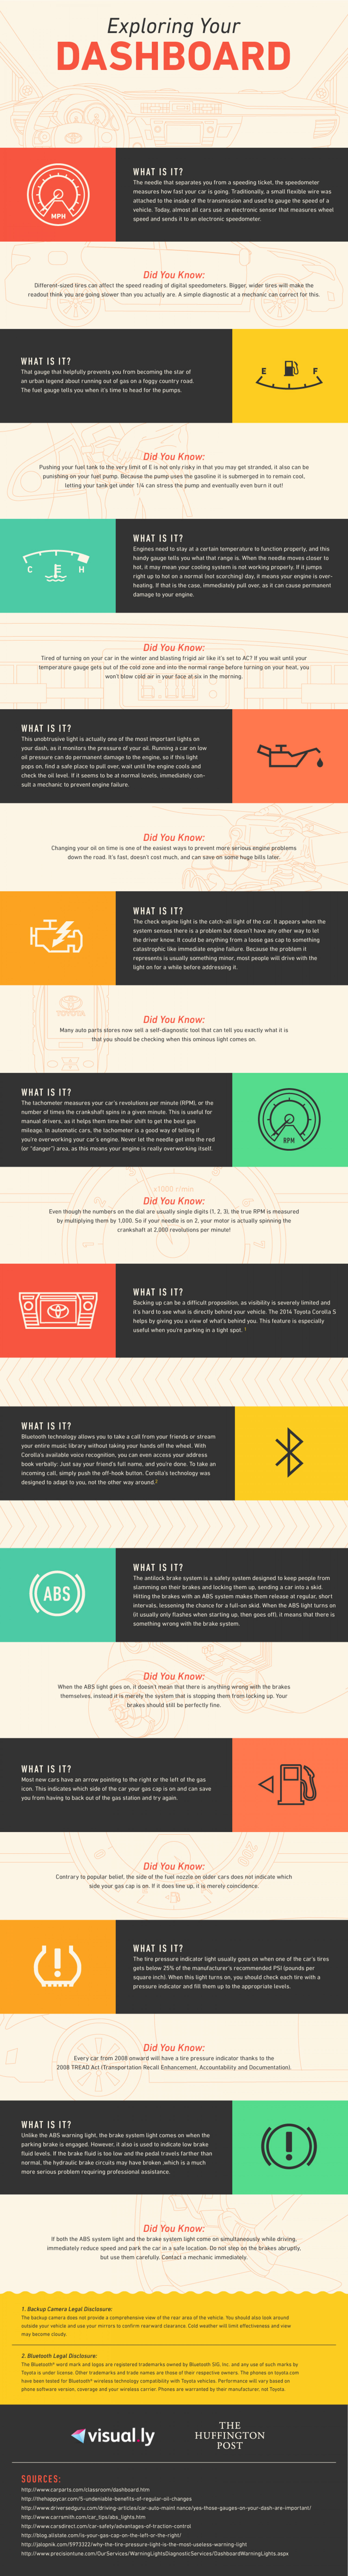 Exploring Your Dashboard Infographic